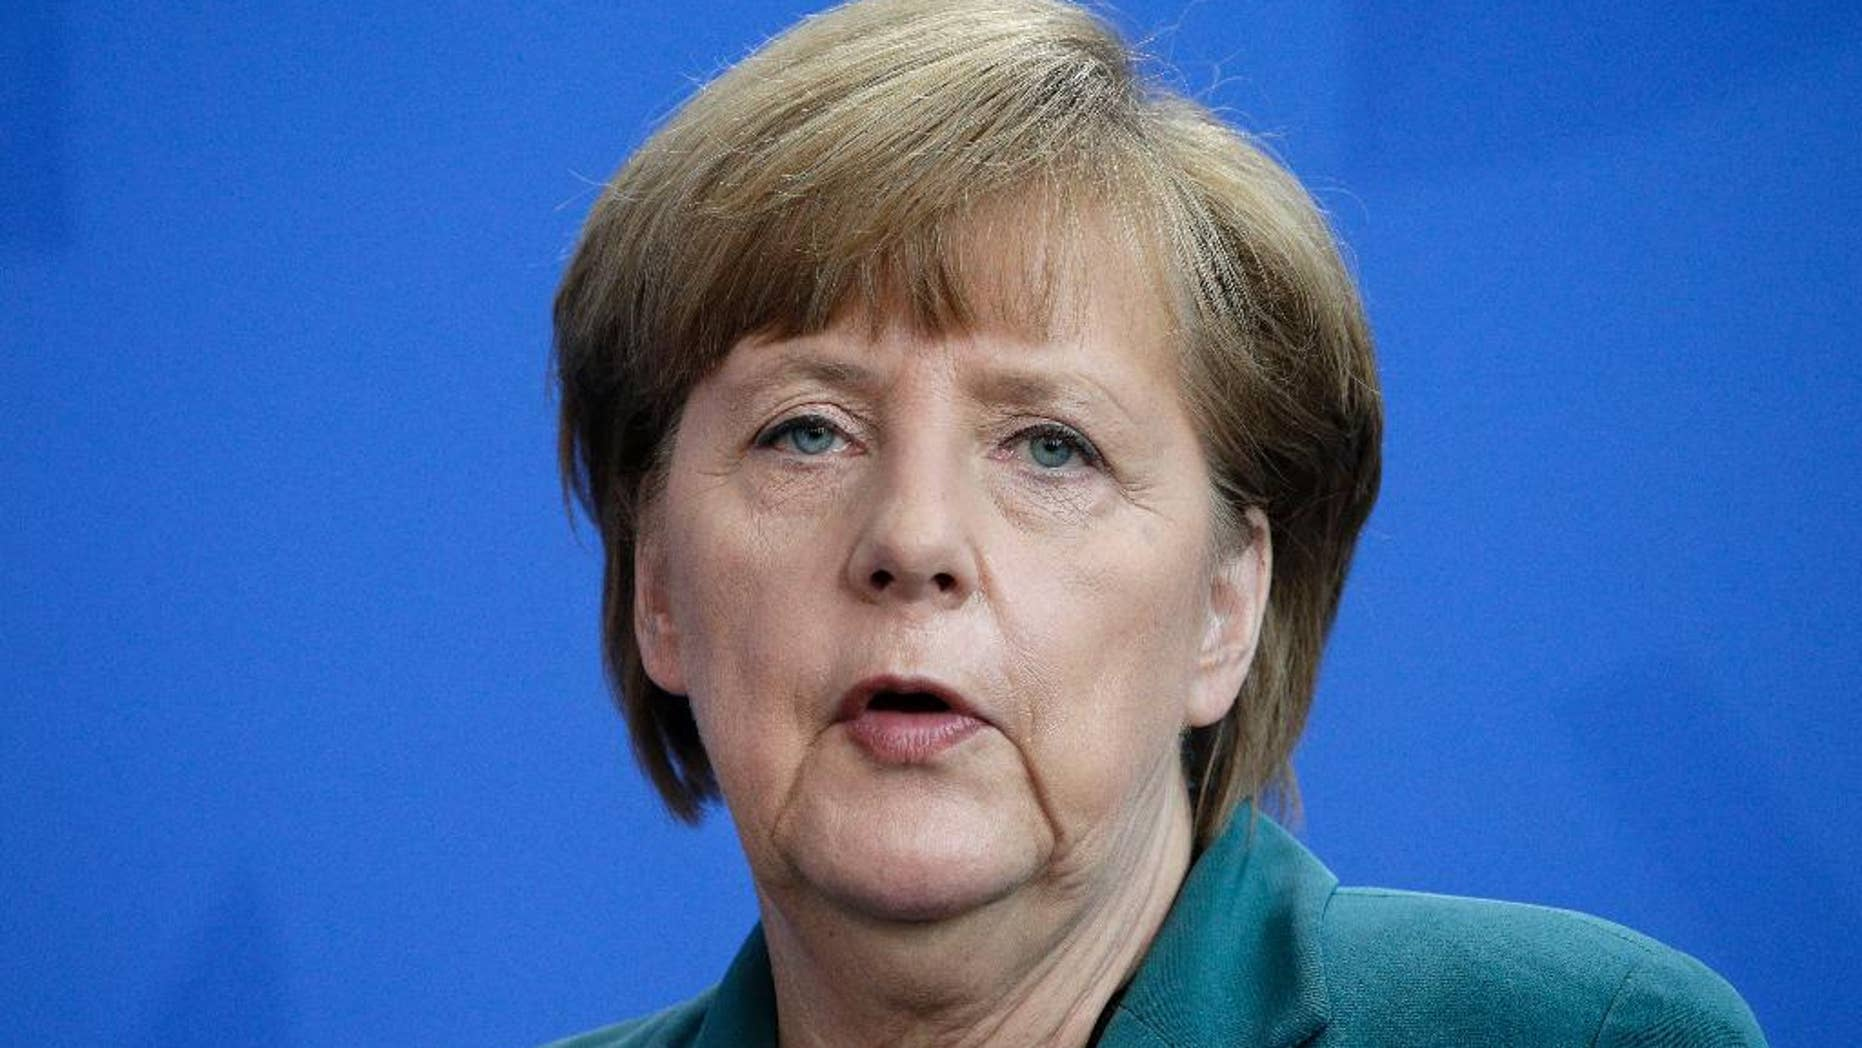 German Chancellor Angela Merkel addresses the media during a joint press conference with Prime Minister of Japan Shinzo Abe, as part of a meeting at the chancellery in Berlin, Germany, Wednesday, April 30, 2014. (AP Photo/Michael Sohn)